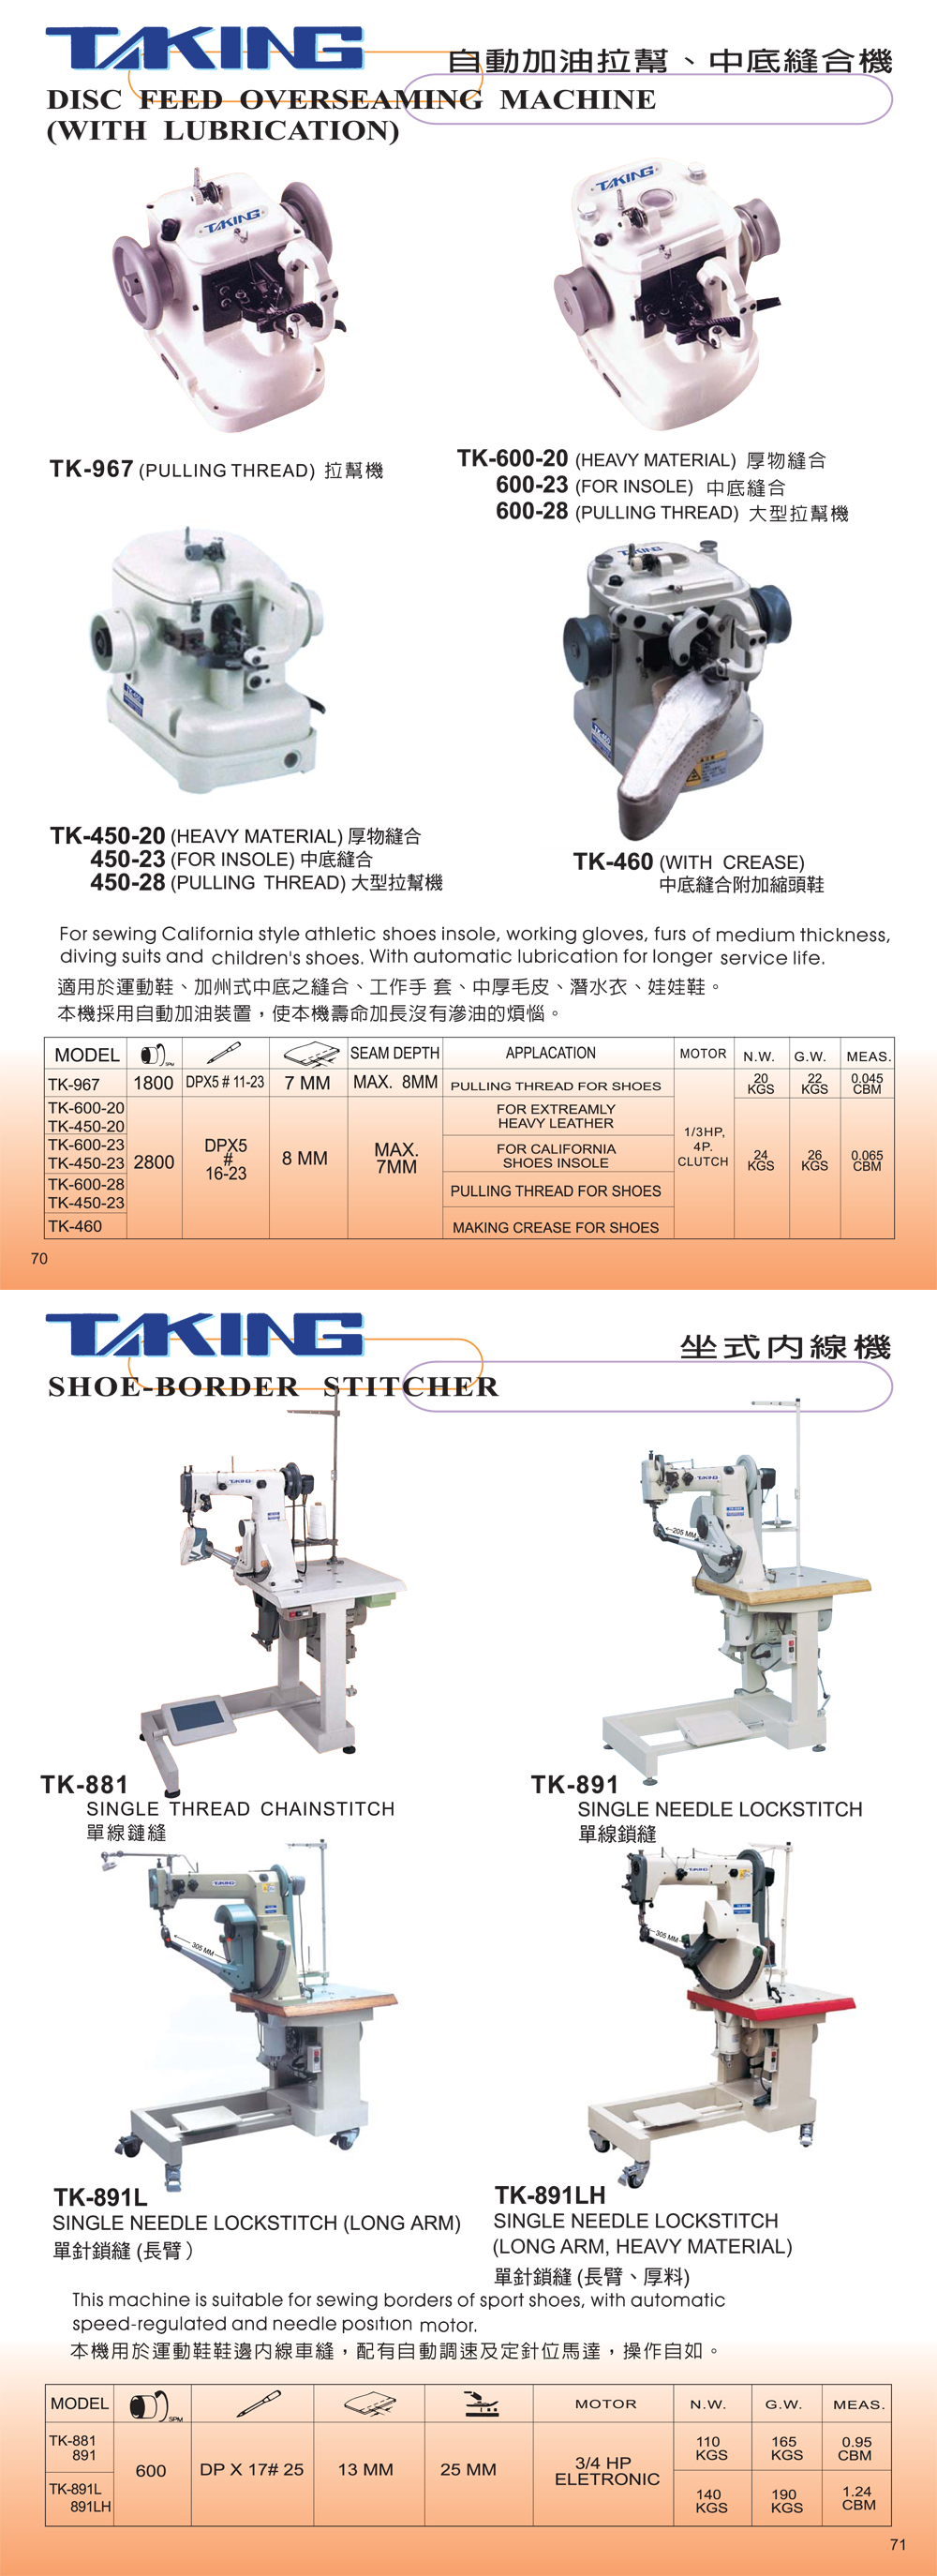 Overseaming Machine/Shoe-border stitcher